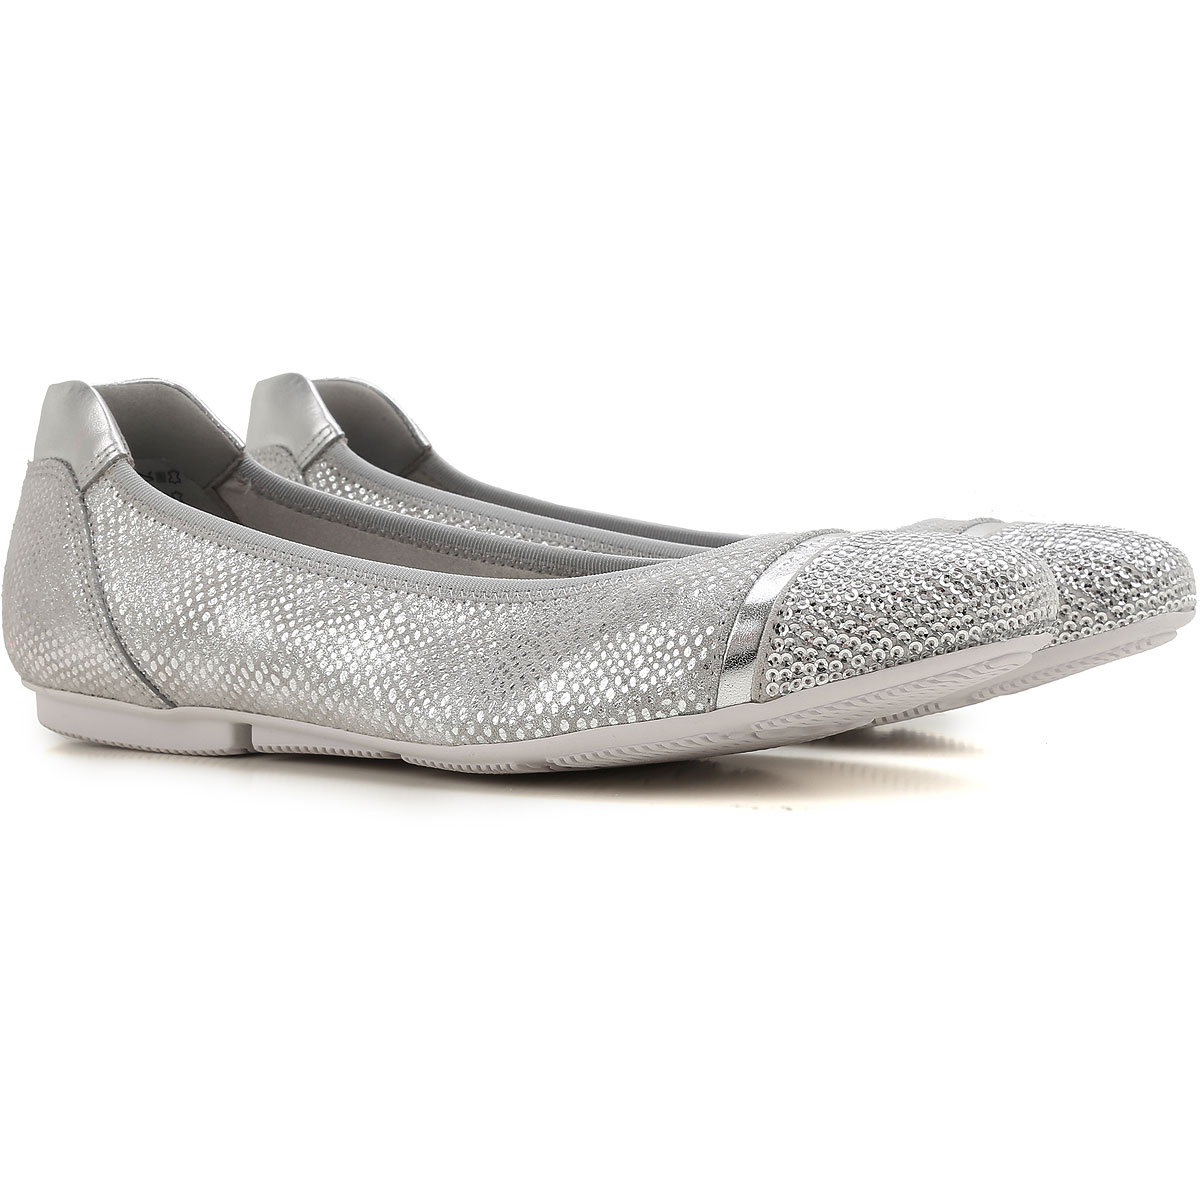 Image of Hogan Ballet Flats Ballerina Shoes for Women On Sale, Silver, Leather, 2017, 5 6.5